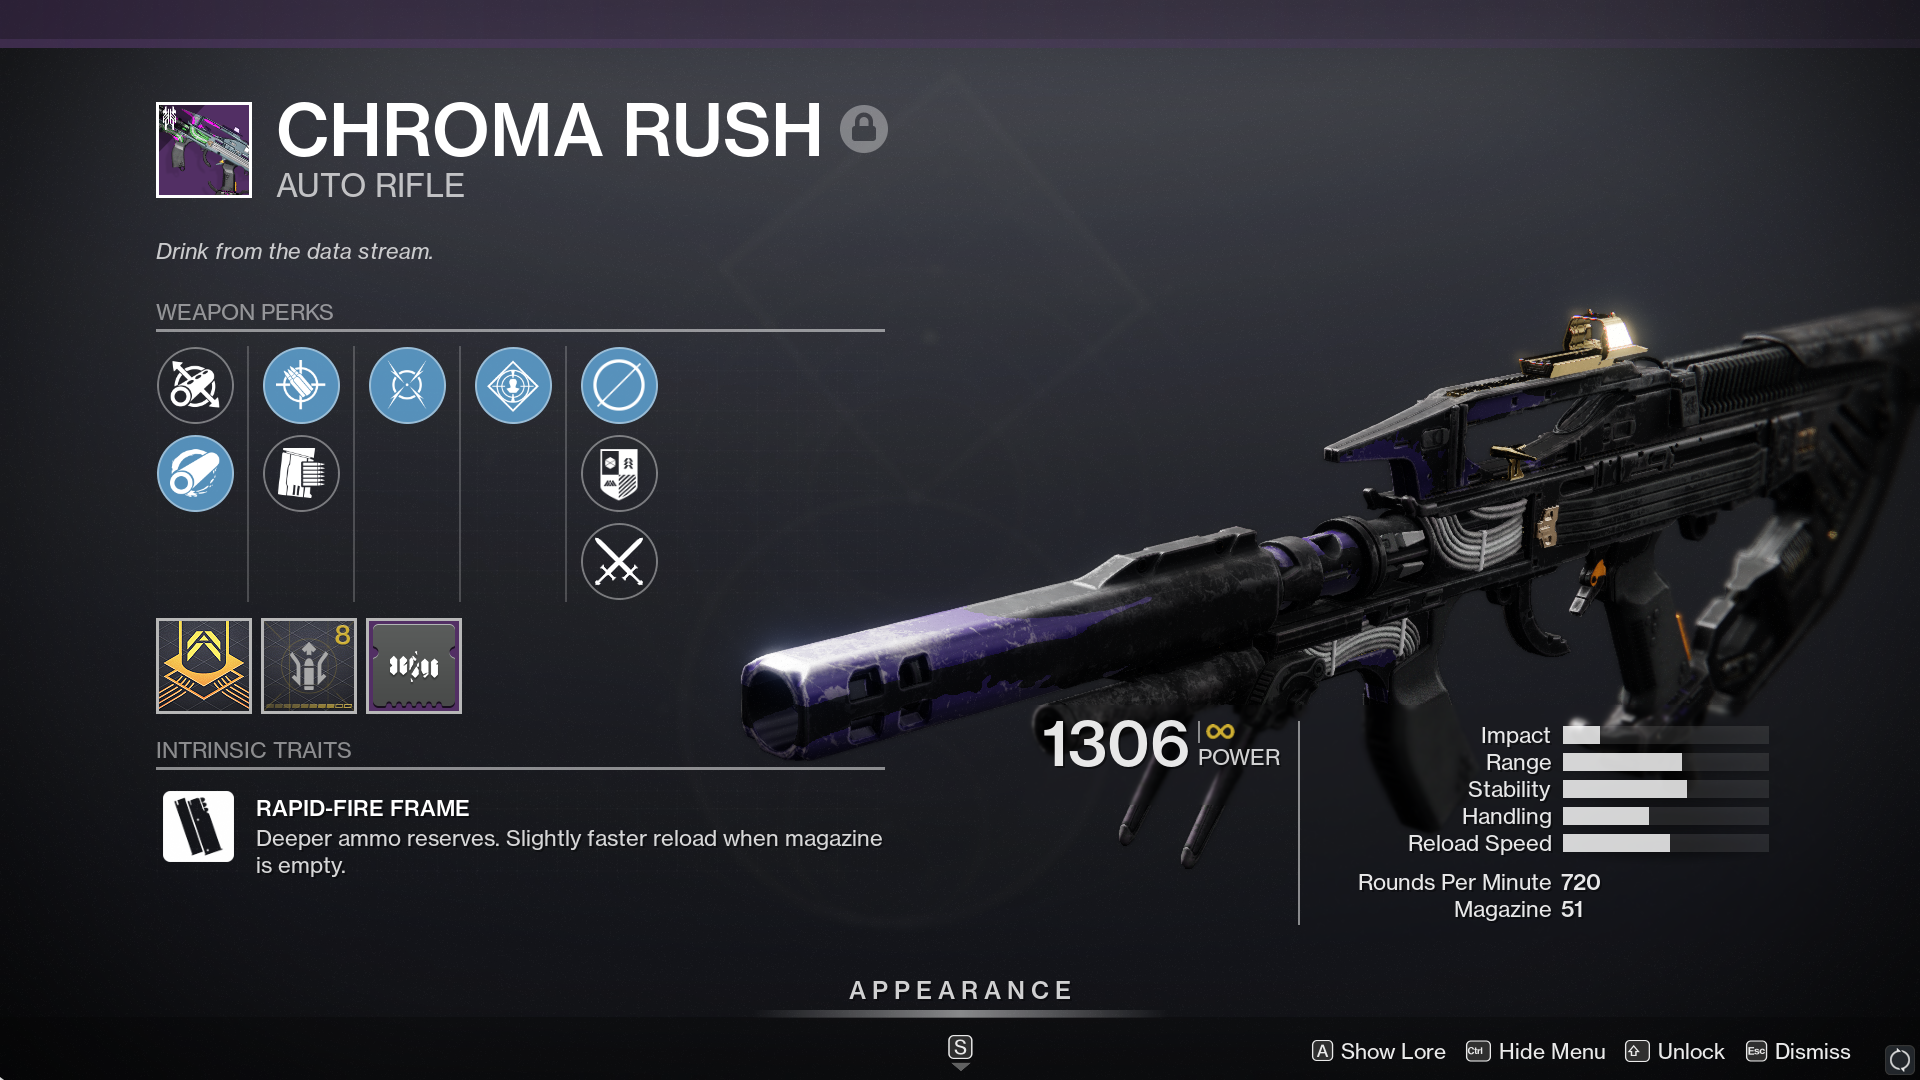 Chroma Rush is a legendary auto rifle in Destiny 2 that sports a high magazine capacity and fast fire rate